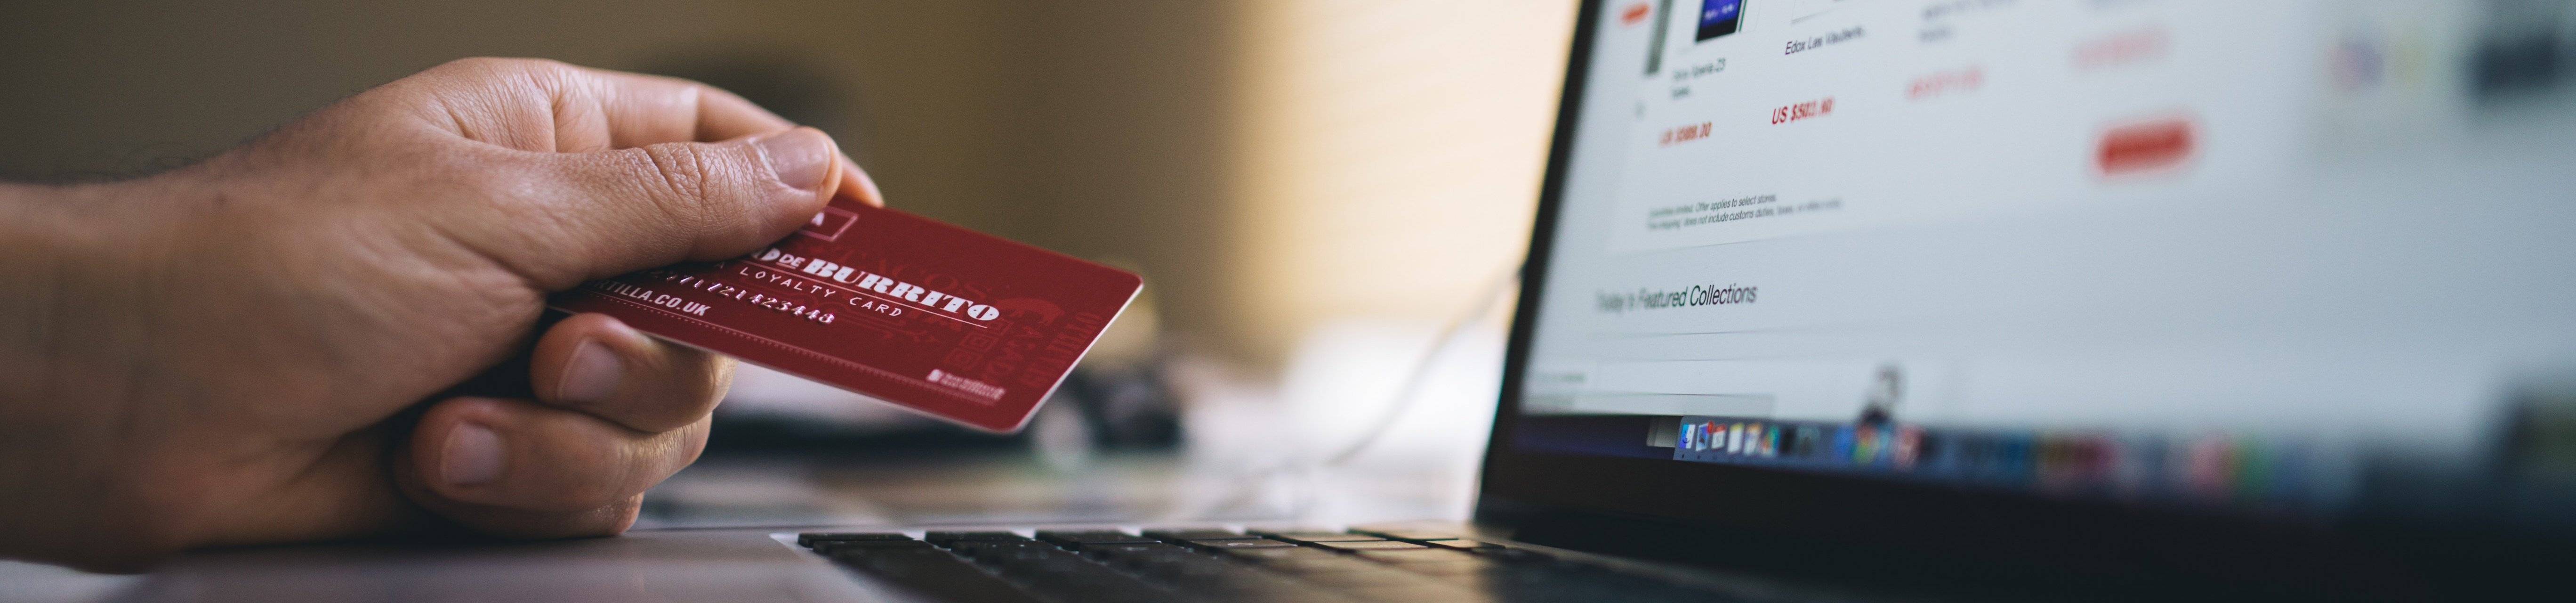 credit-card-online-shopping-computer